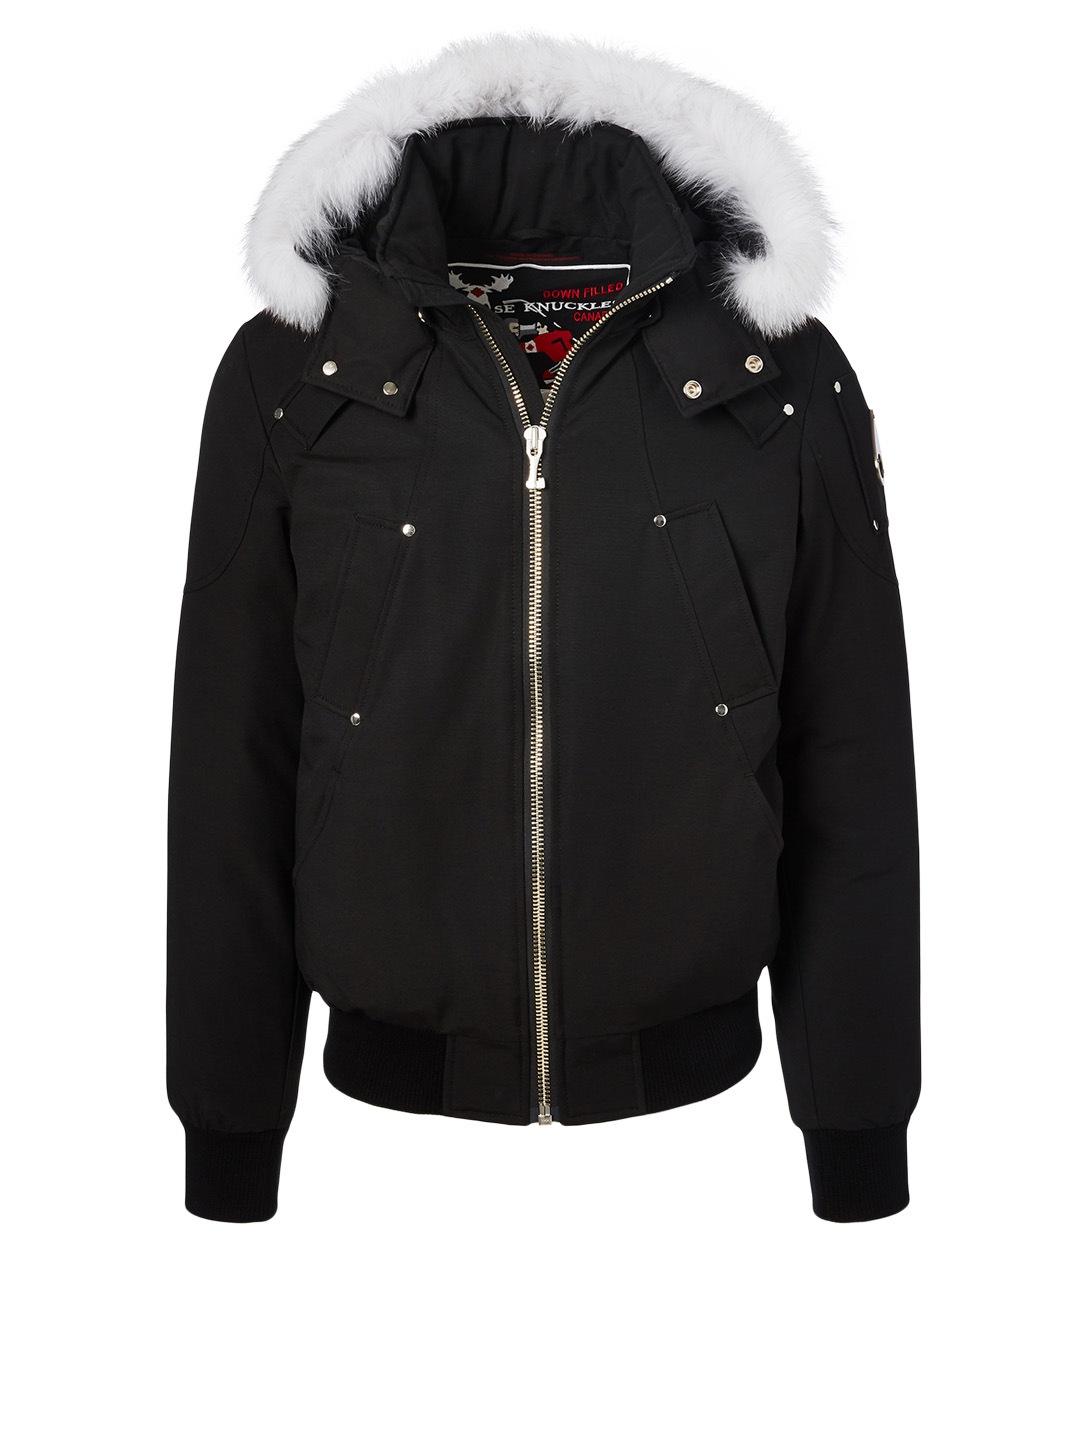 MOOSE KNUCKLES Ballistic Bomber Jacket With Fur Hood Men's Black